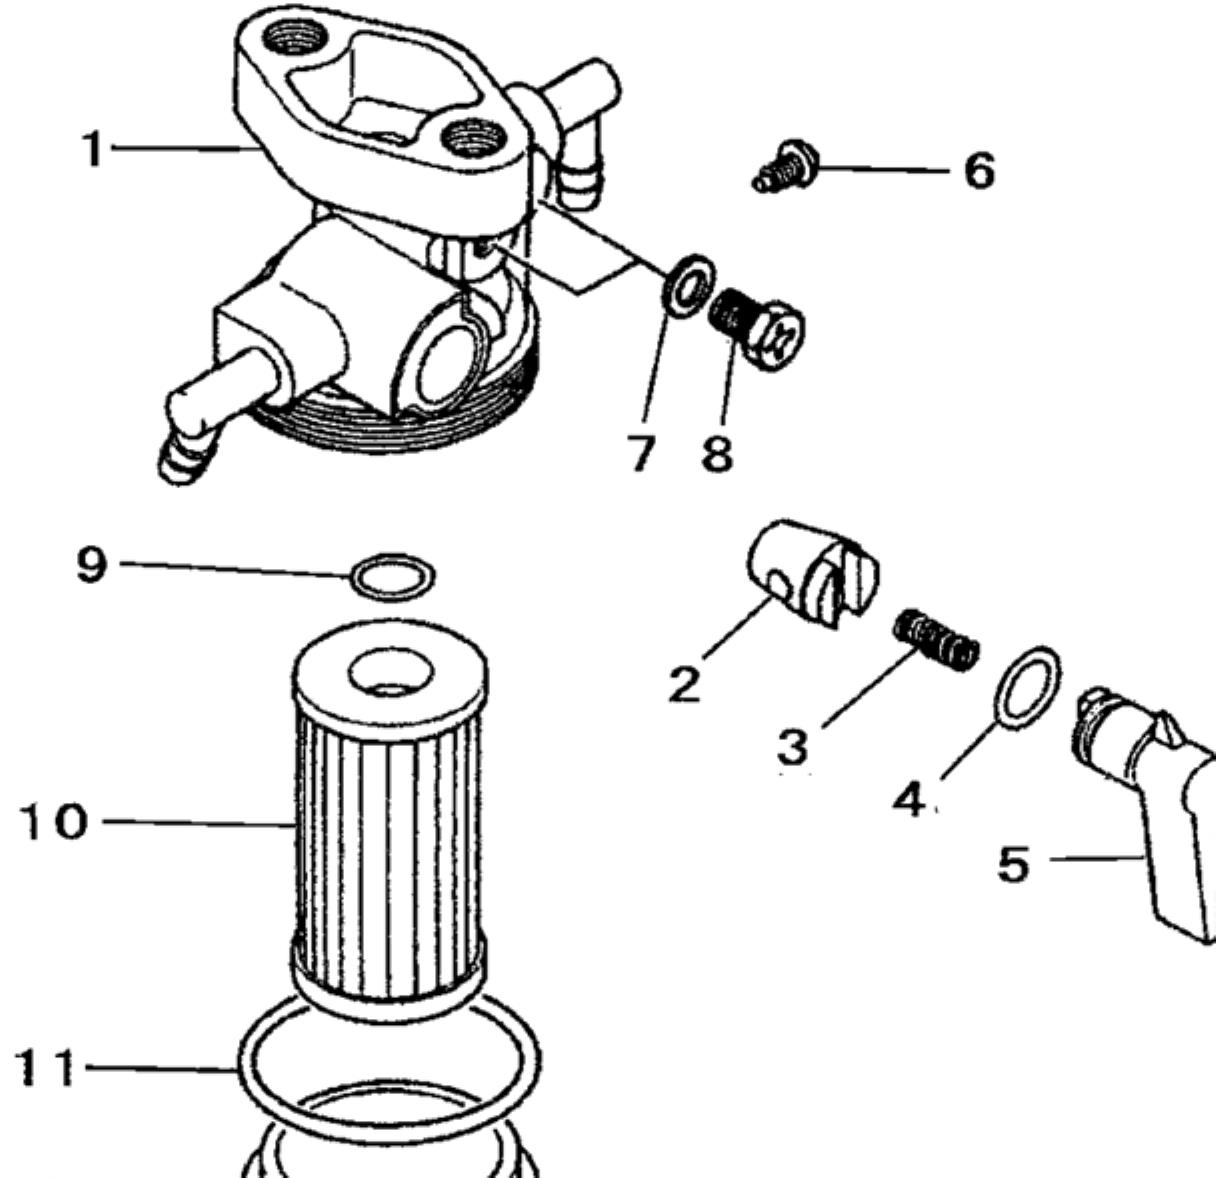 hight resolution of fuel filter assembly for 2615 mahindra tractor mm434476